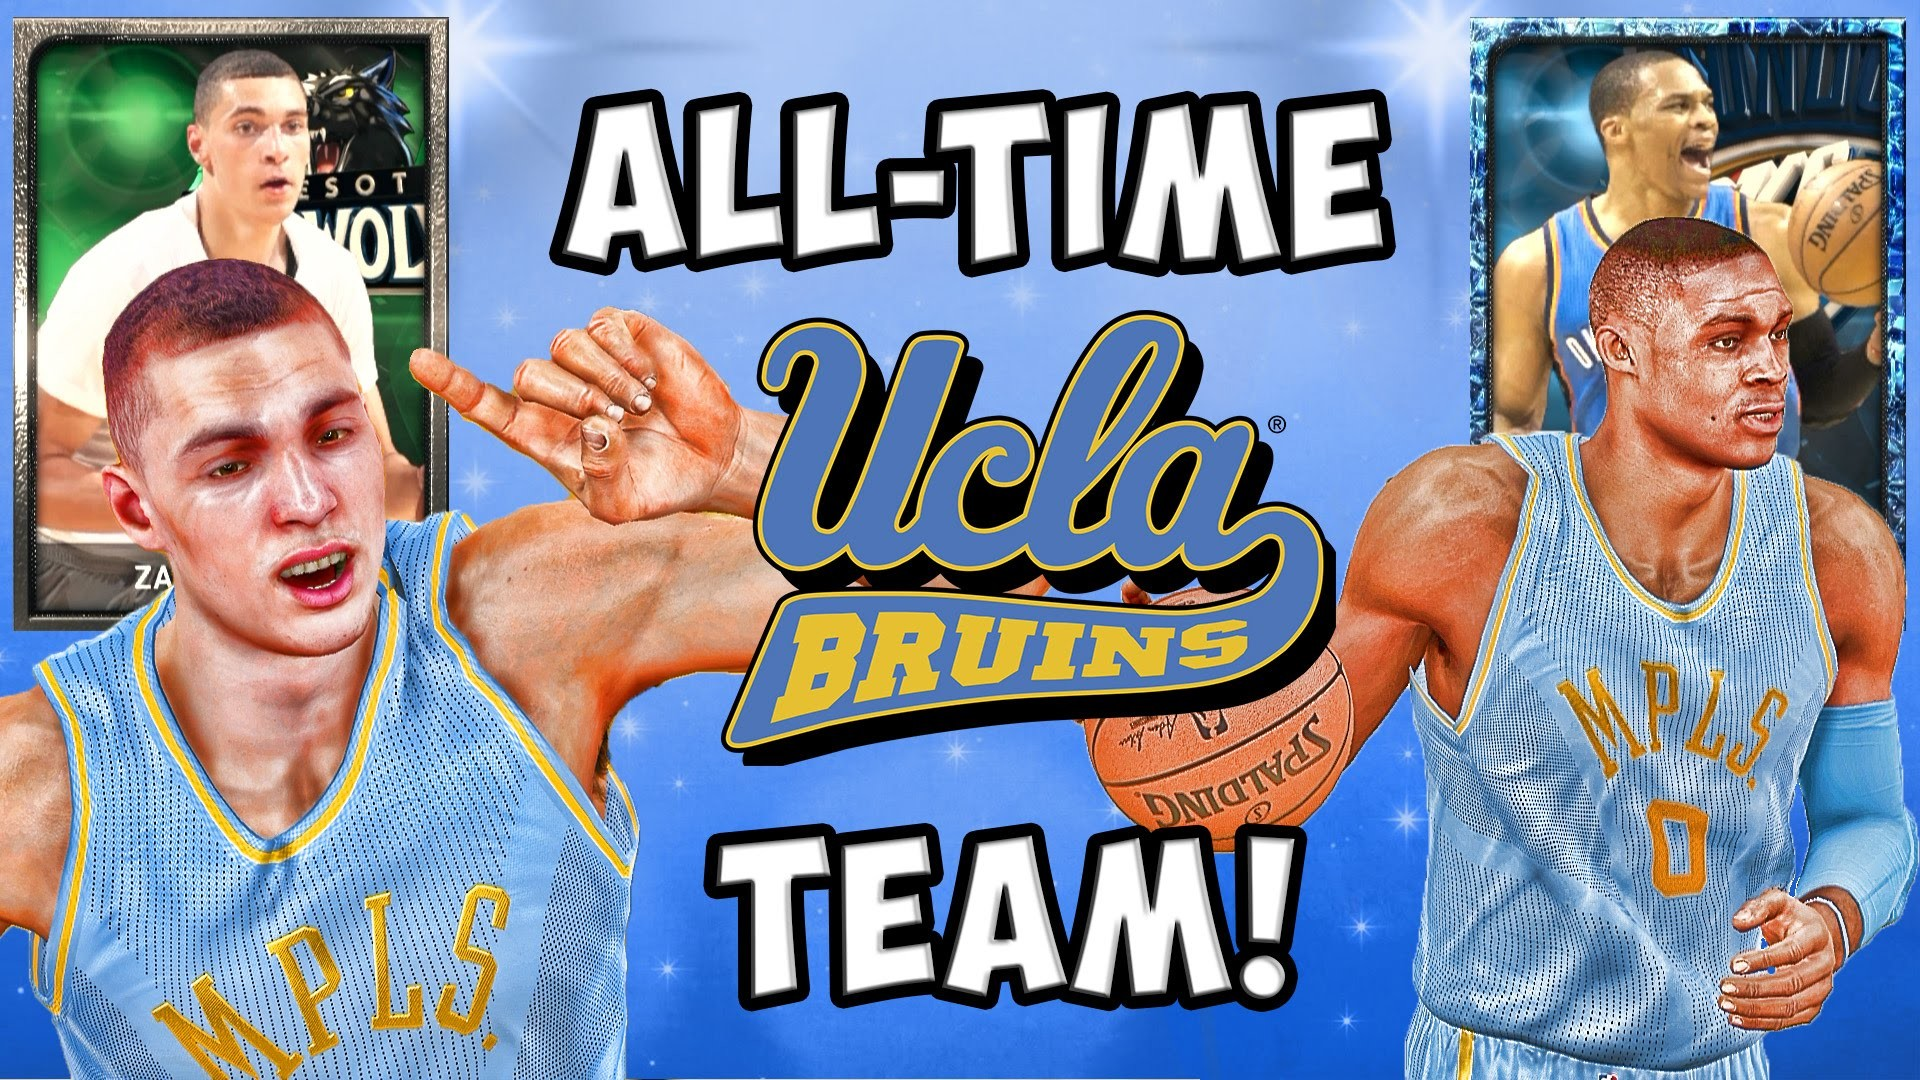 1920x1080 NBA 2K15 MyTeam Gameplay - All-Time UCLA Bruins Team! Sapphire Russell  Westbrook and Zach Lavine!